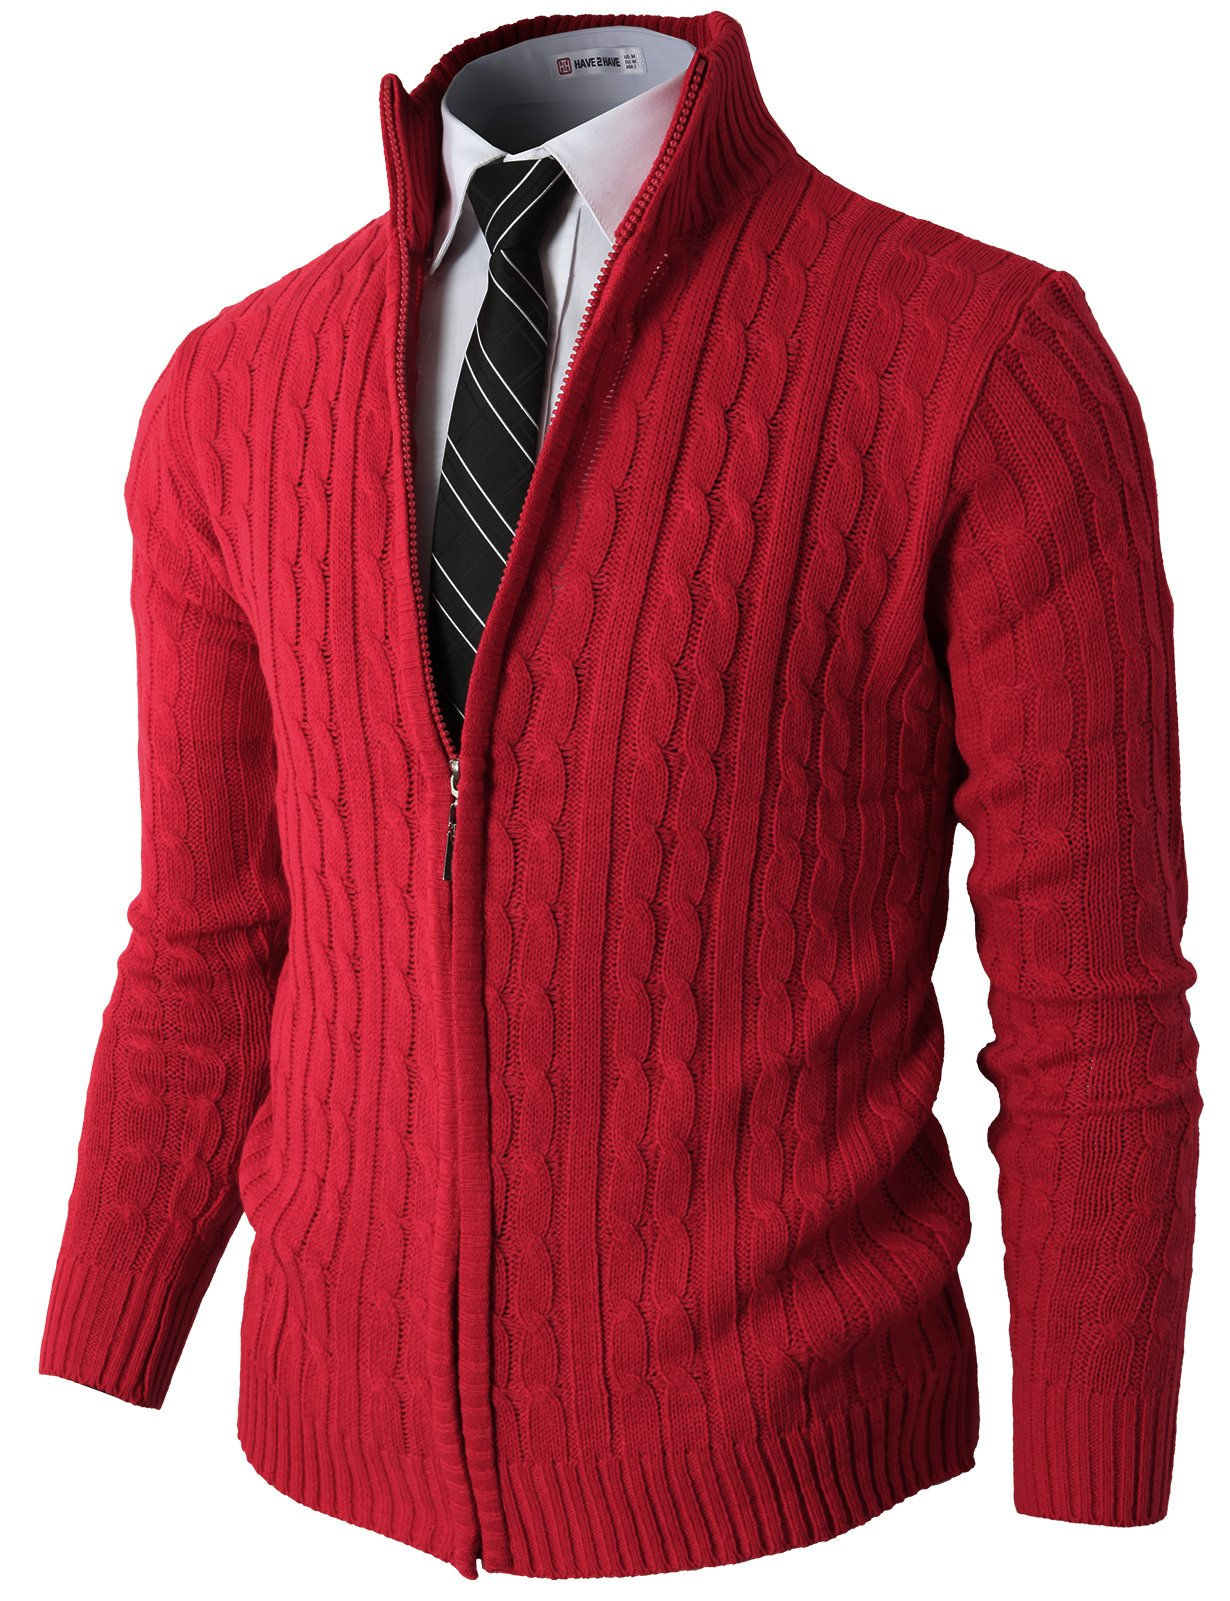 H2H Mens Slim Fit Full-zip Kintted Cardigan Sweaters with Twist Patterned RED US L/Asia XL (KMOCAL032)